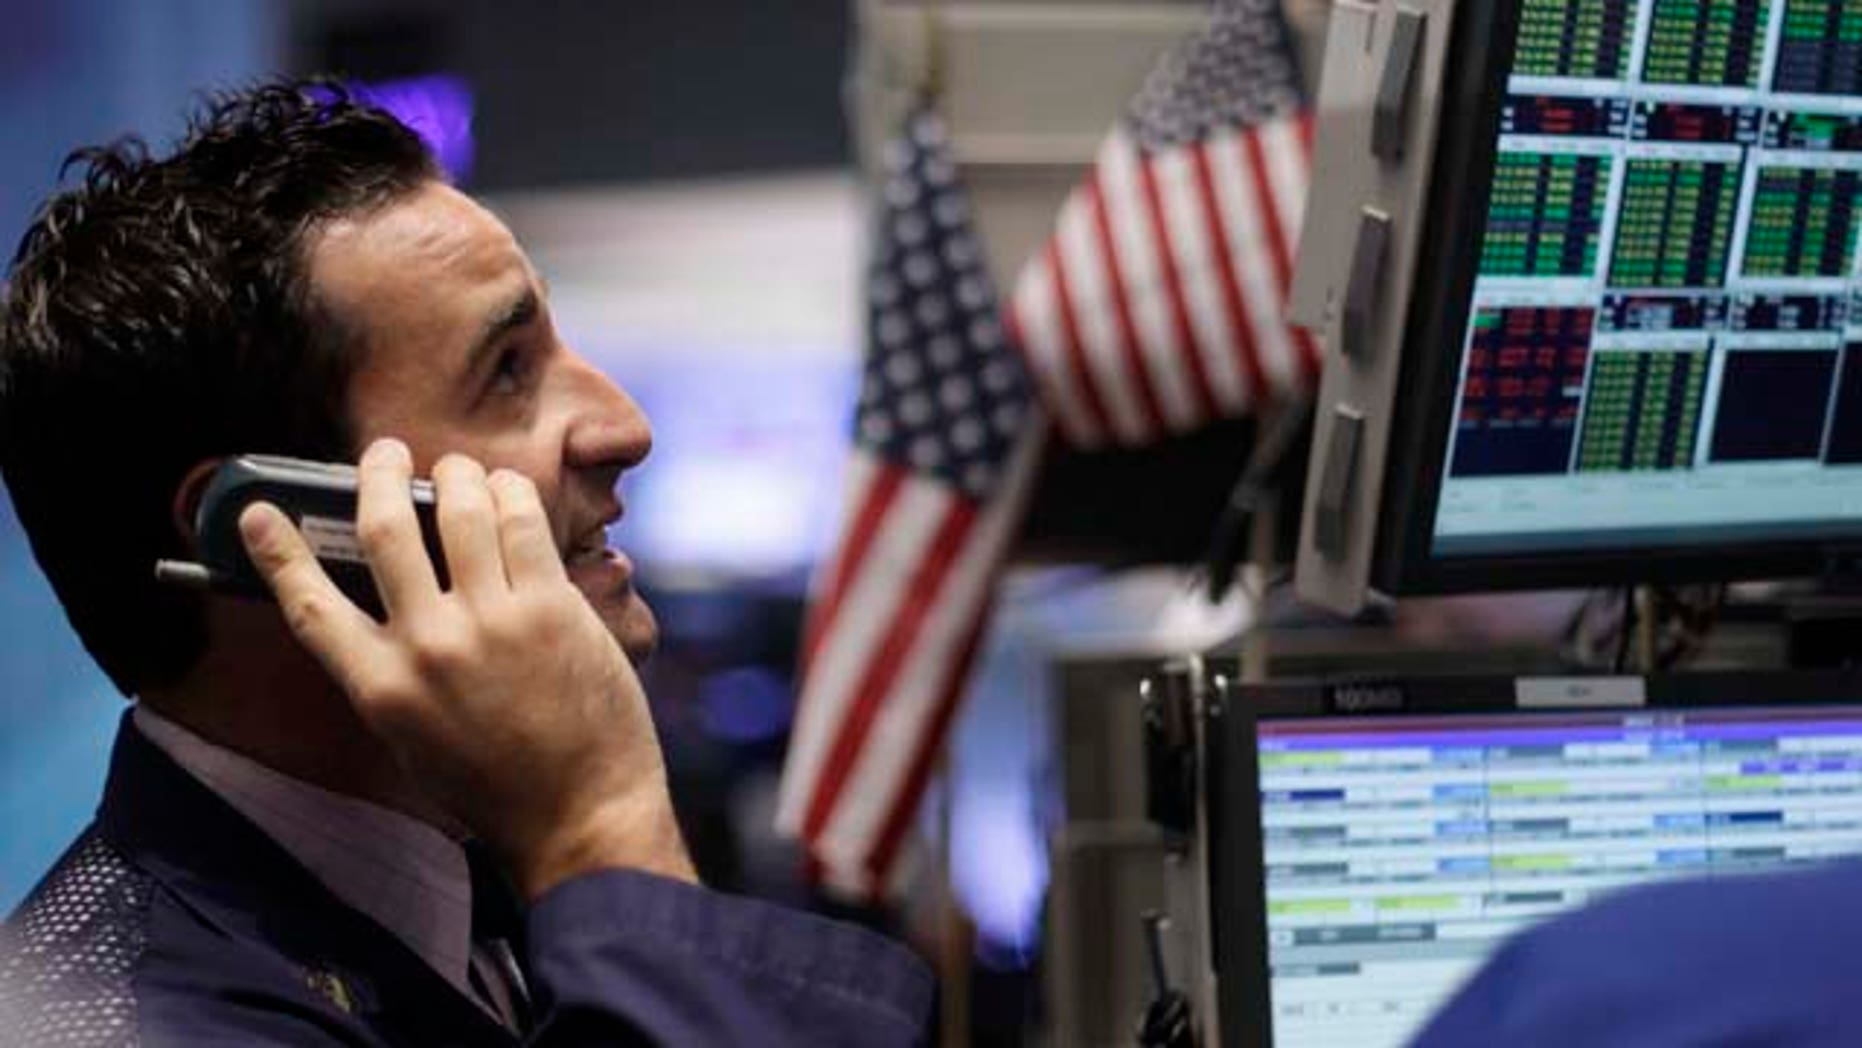 A specialist works at the New York Stock Exchange, Friday, Sept. 23, 2011 in New York. Investors fear that a global recession may already be under way. (AP Photo/Mark Lennihan)